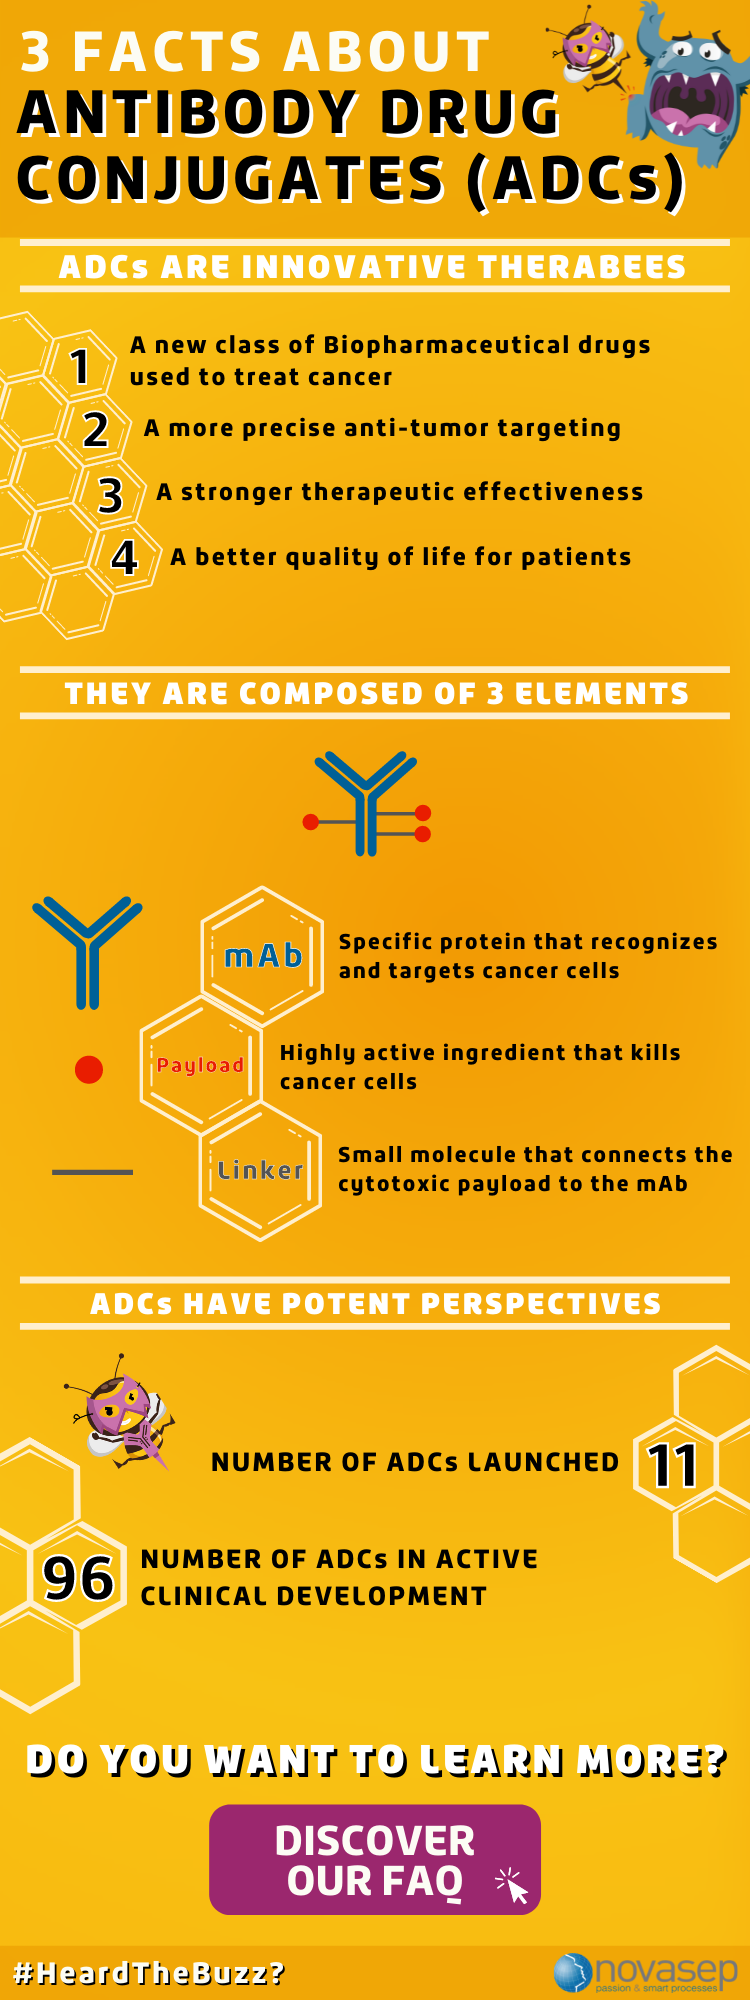 Novasep 3 Facts About ADCs